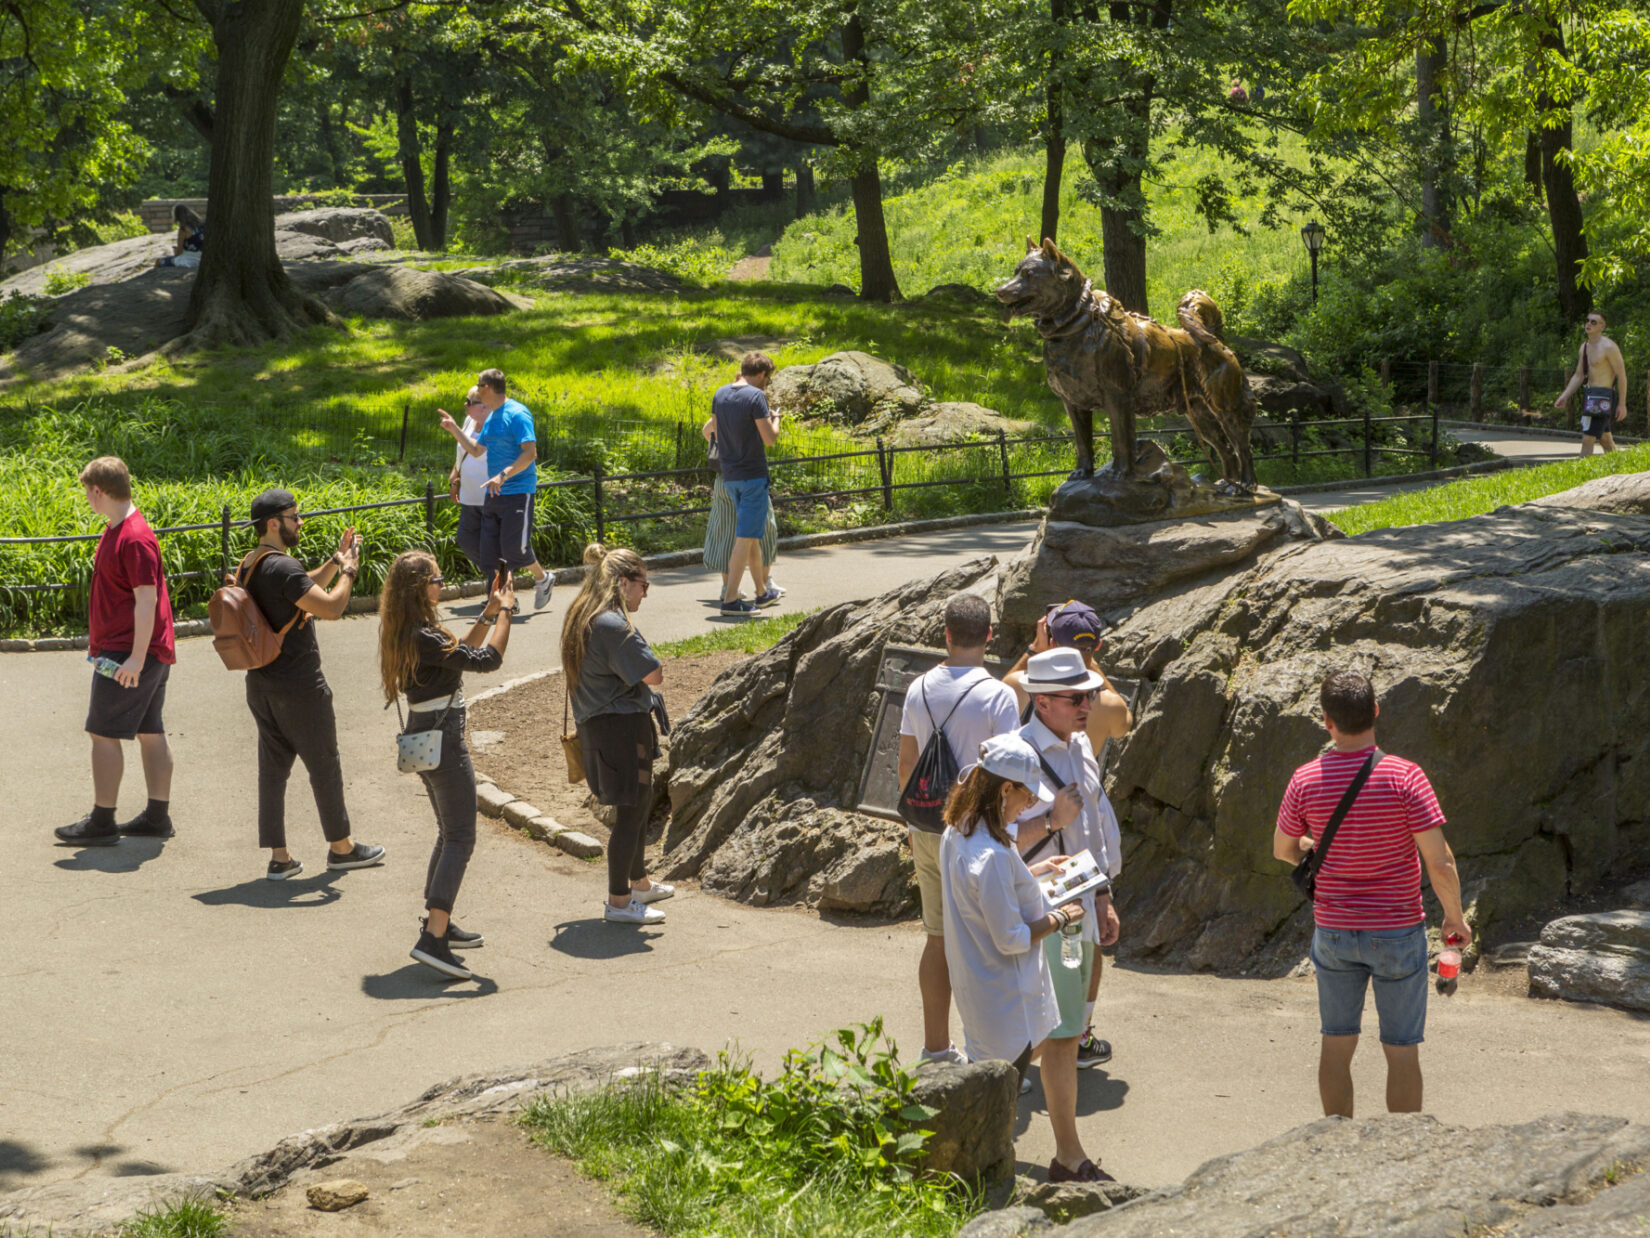 Visitors admire and photograph the statue of Balto on a sunny day